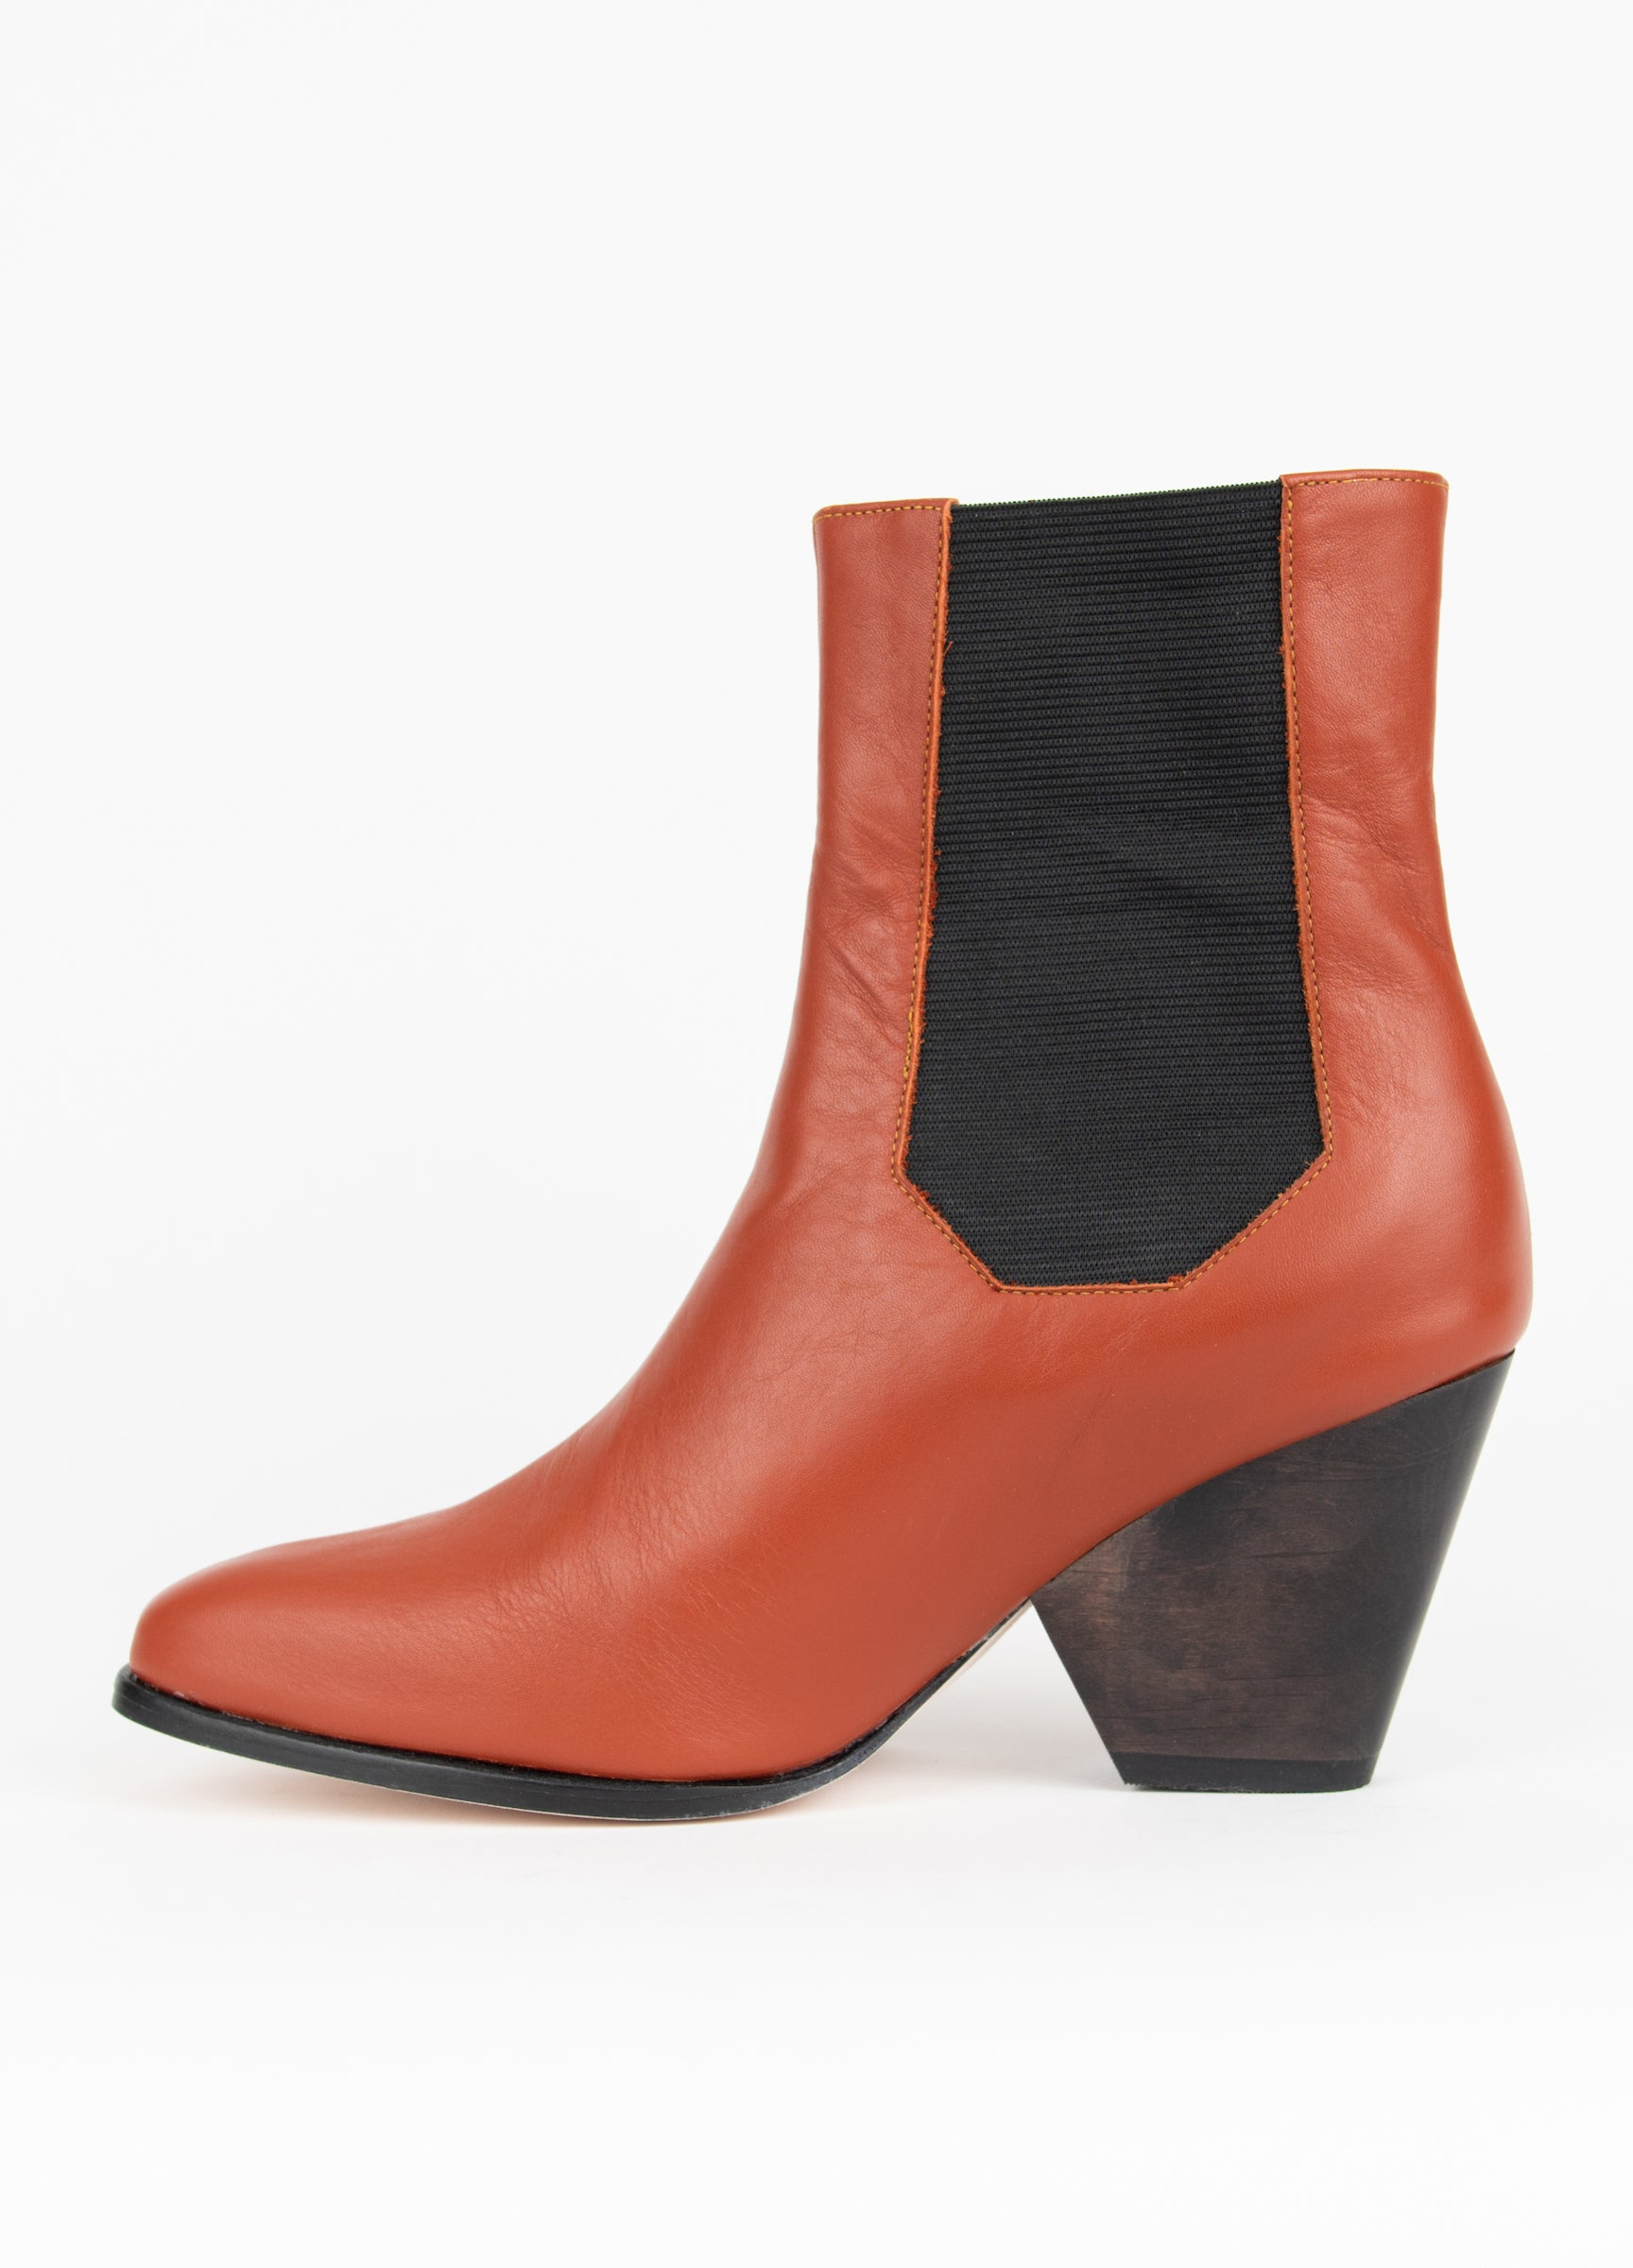 "Clementines The Palatines Ingeria Duo Boot Rosewood Leather 3"" Heel Women's Shoes Seattle Side"